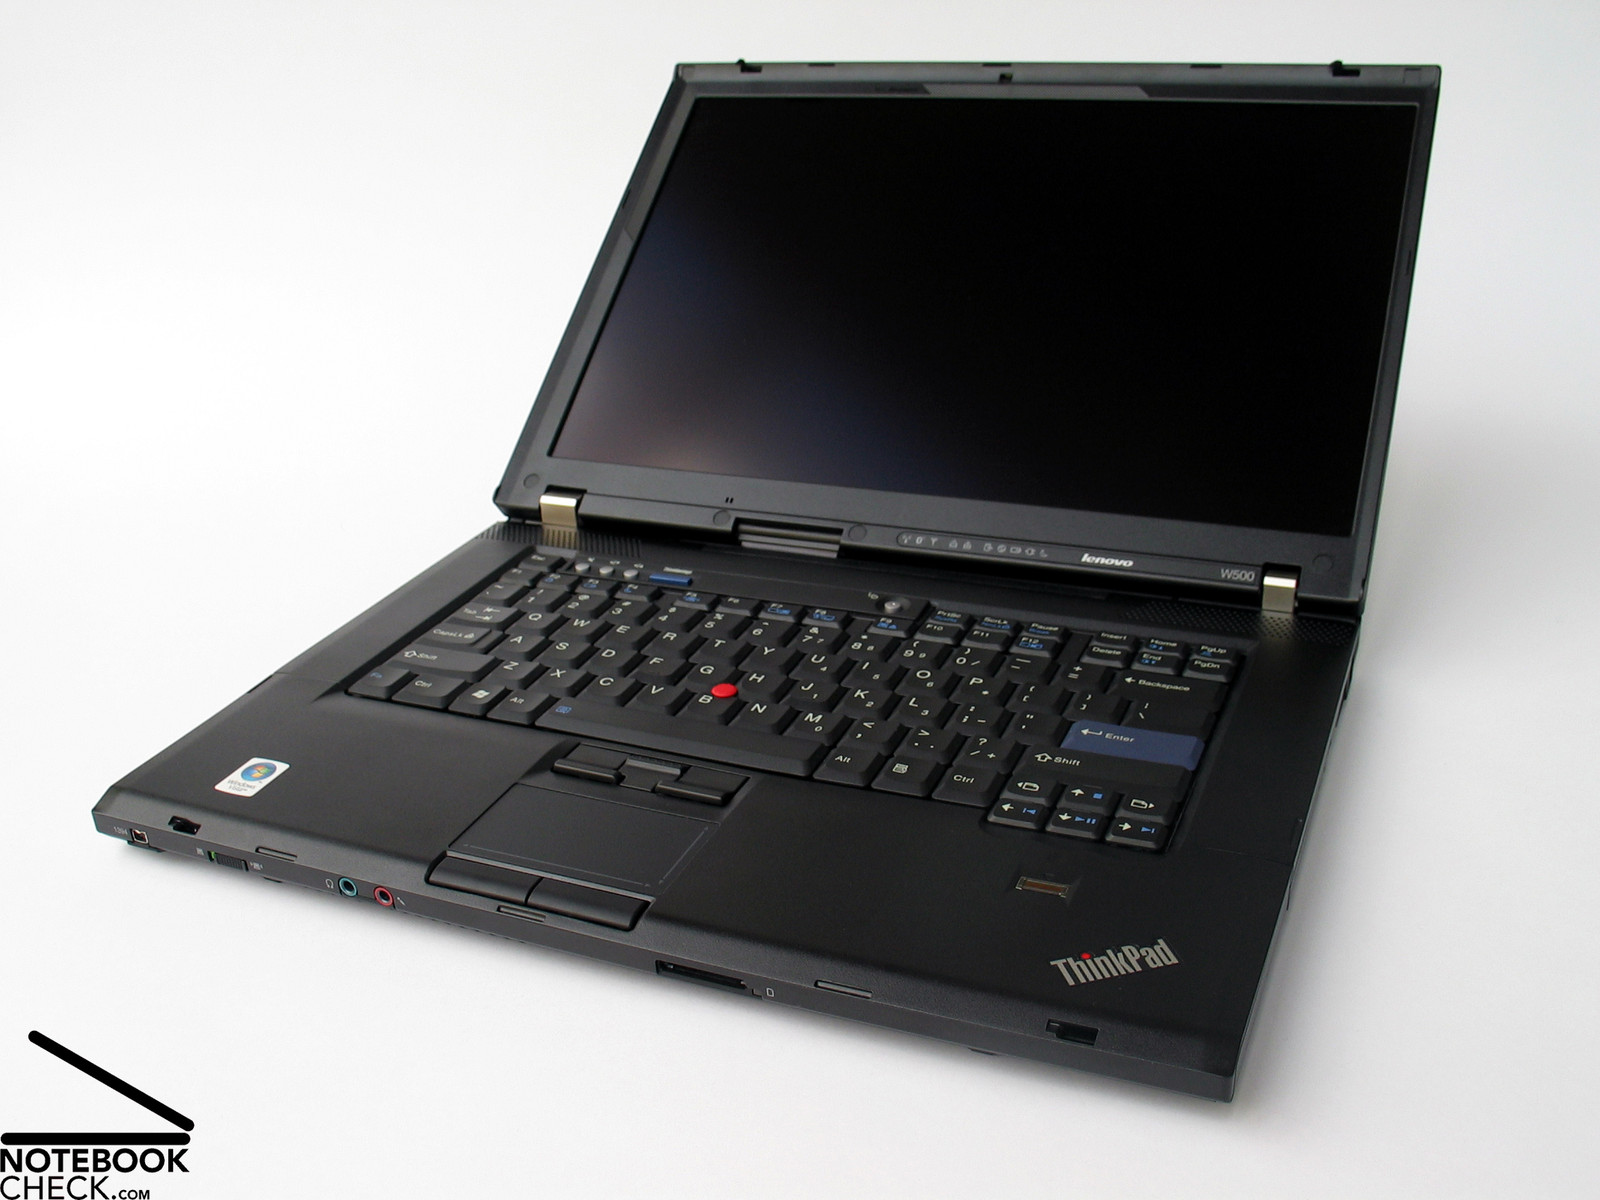 the notebook review Get unbiased laptop reviews from the experts at laptop mag find the best laptops in our laptop buying guide and configurator.